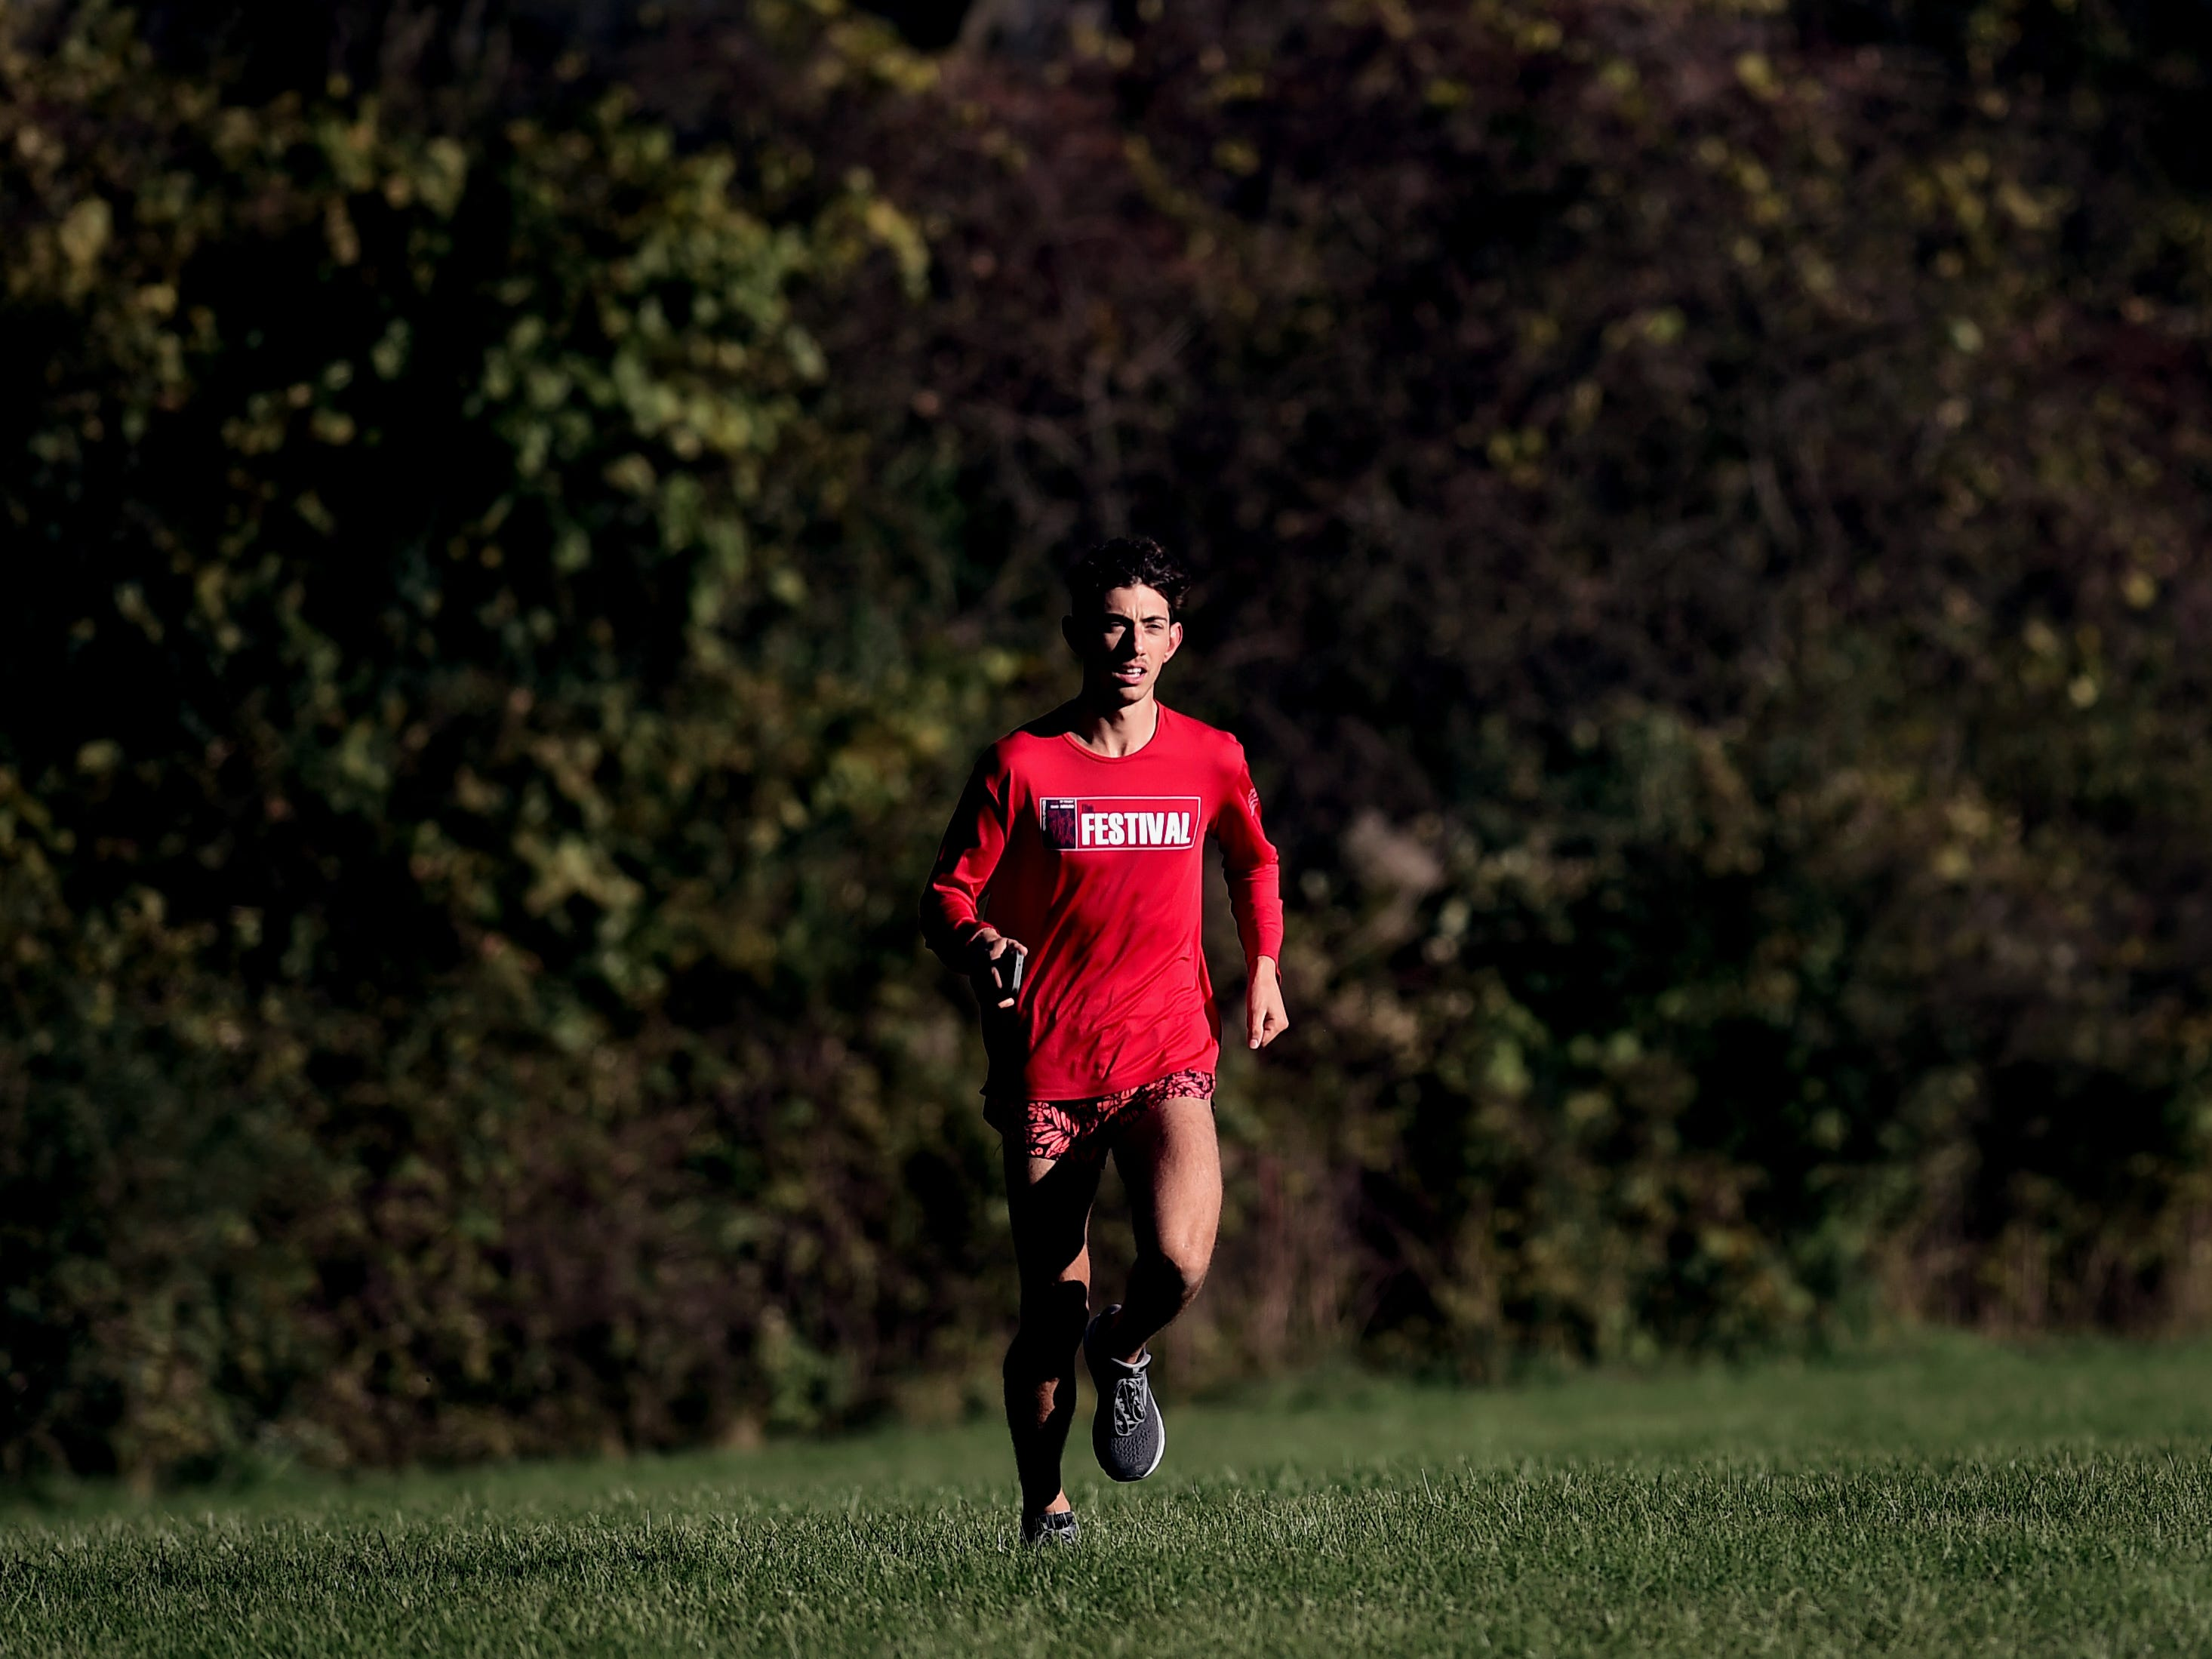 Gabe Planty of Watkins Glen Central High School, cross country athlete. Athlete Of The Week, October 30, 2018.